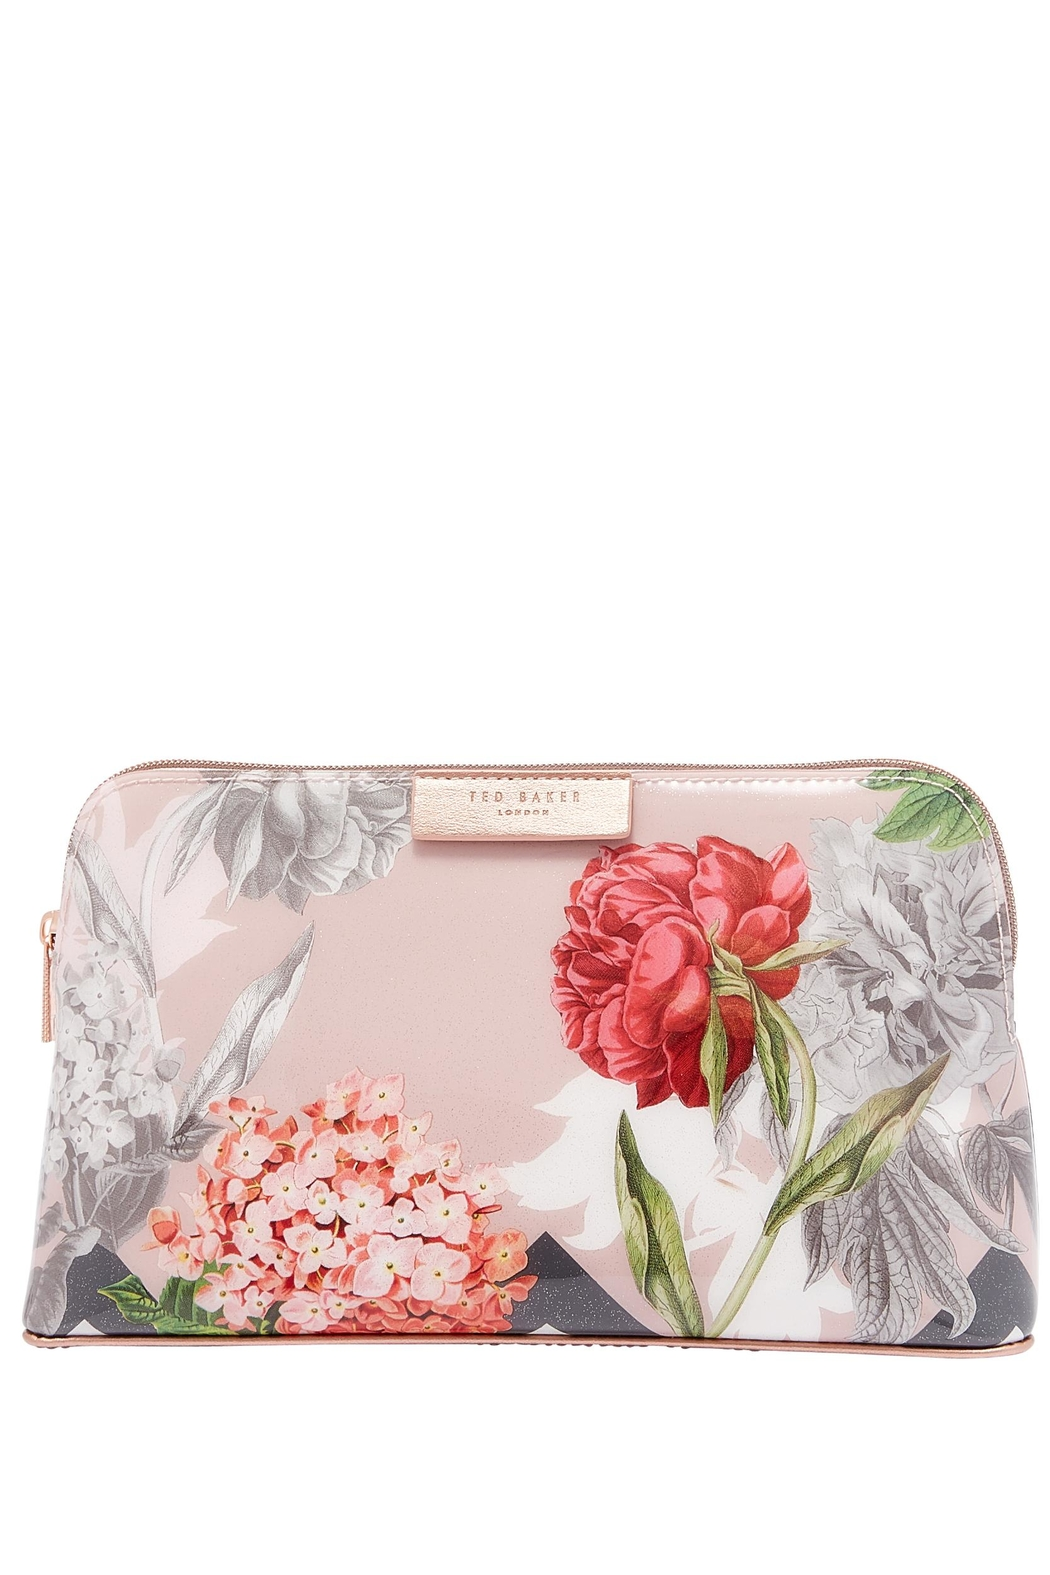 956ba9239e99 Ted Baker Large Cosmetic Bag from Wallingford by The Dressing Room ...